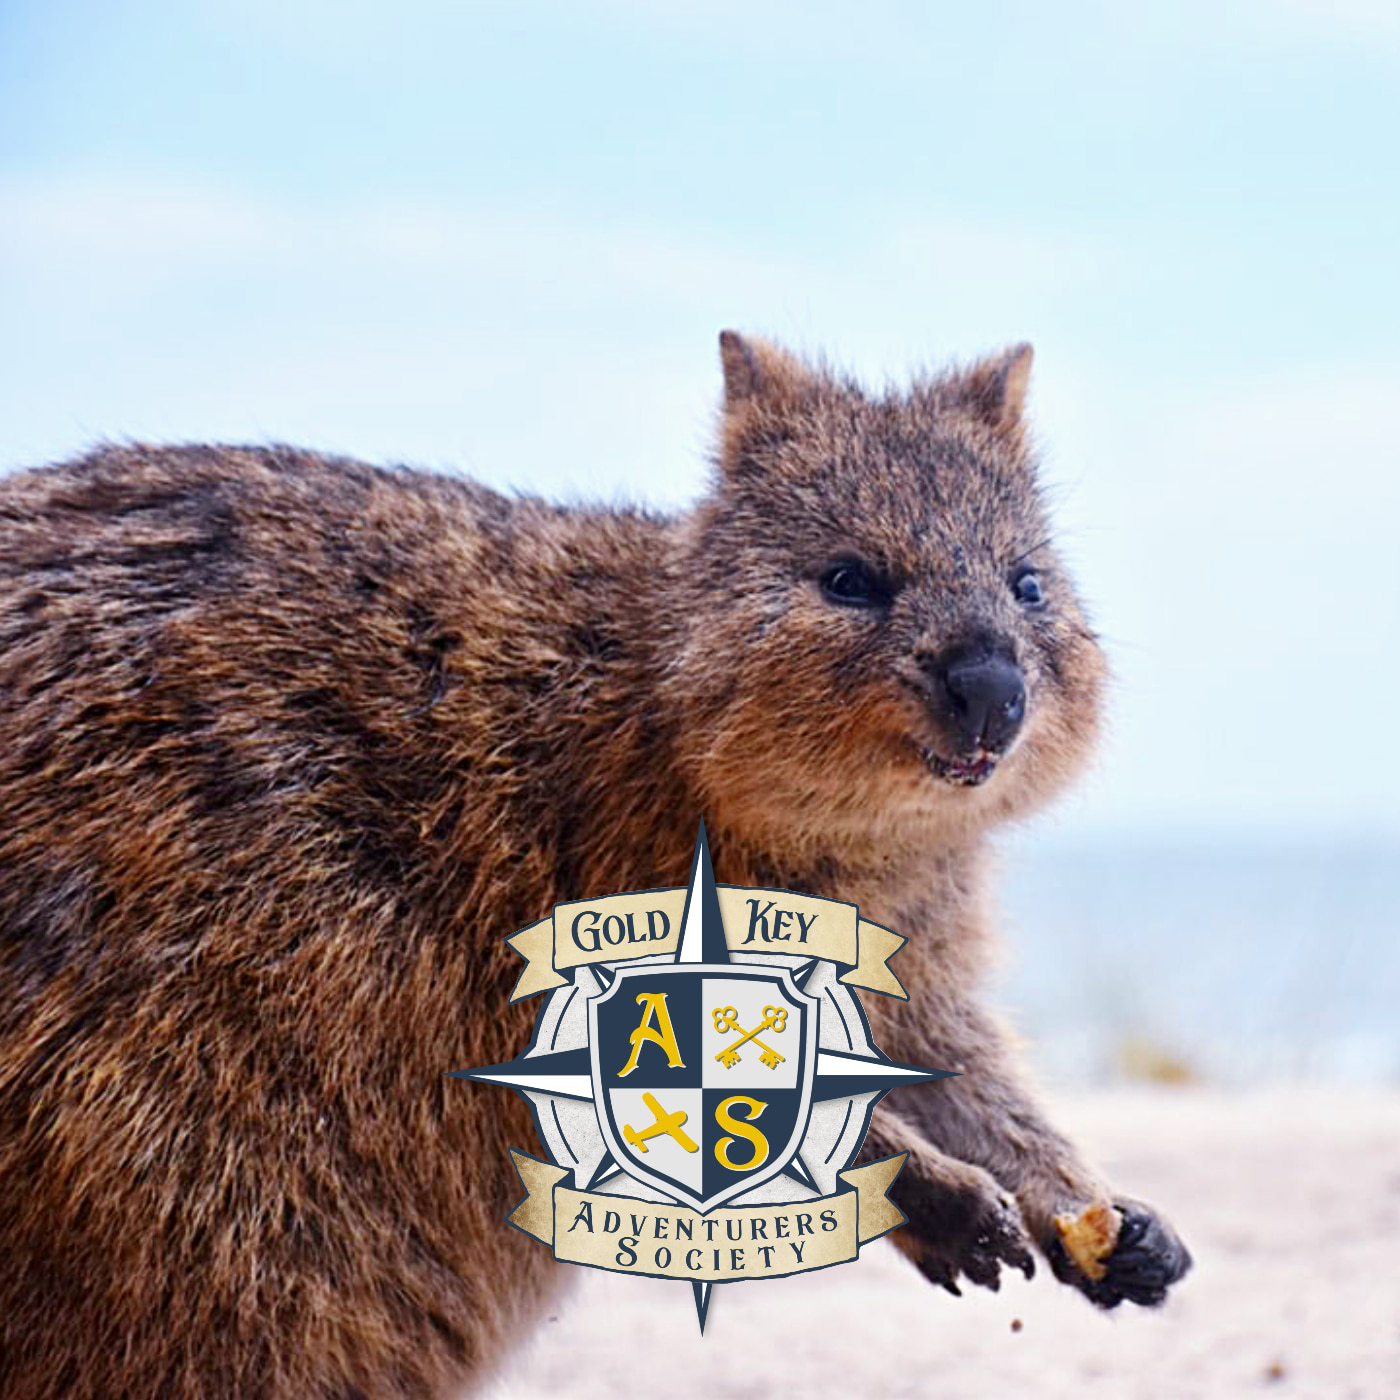 2020 Travel Trends Part 3: Rise of the Quokka